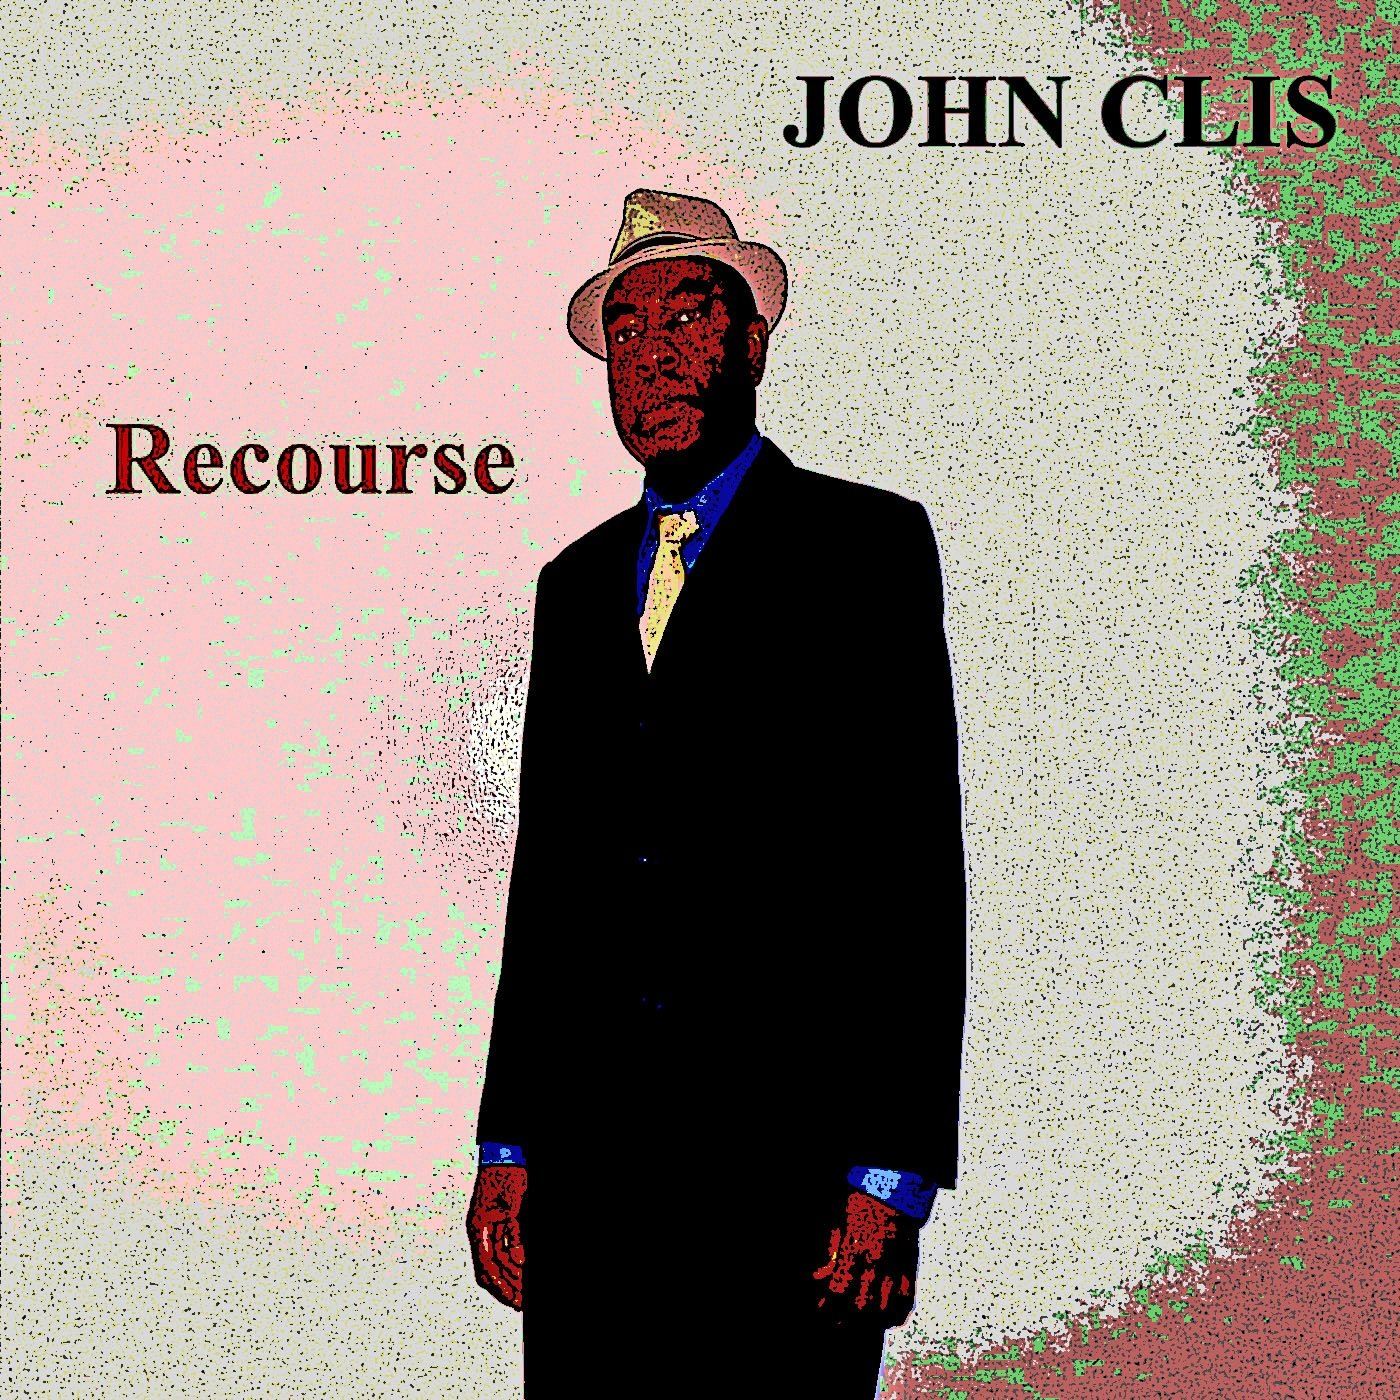 https://0201.nccdn.net/1_2/000/000/0af/f1e/JOHN-CLIS-15TH-CD-1400x1400.jpg